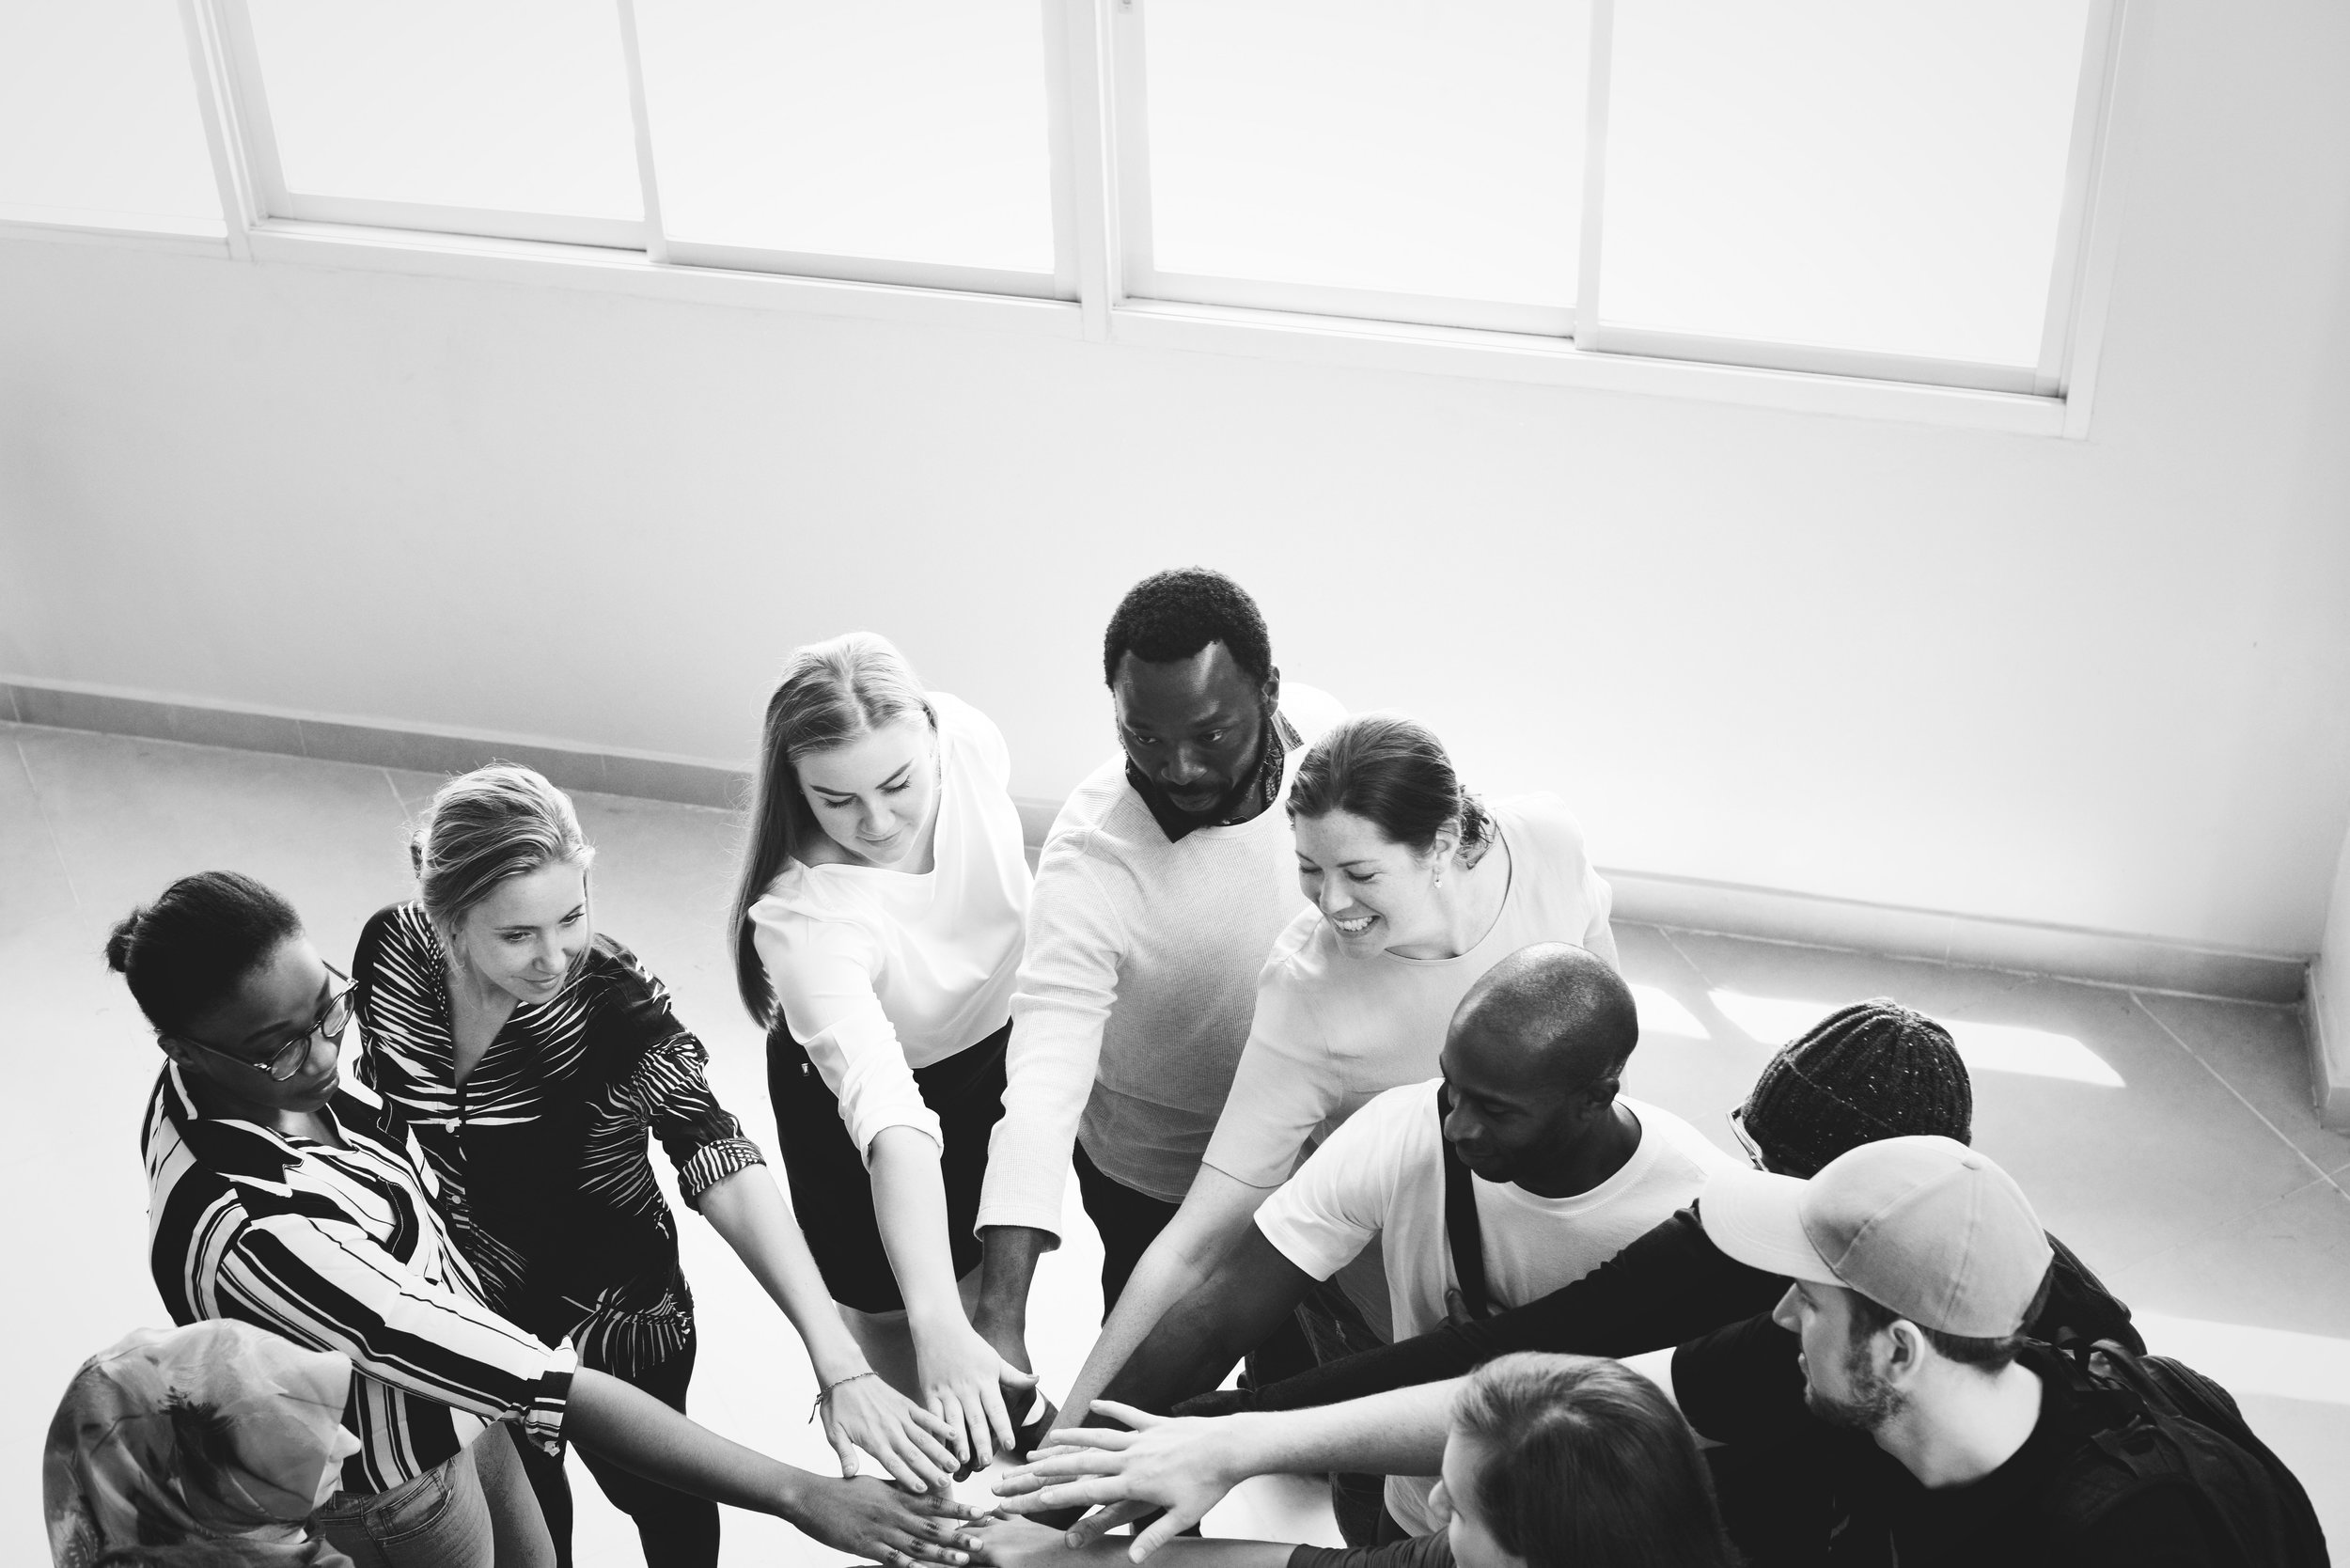 Meeting more is an integral part of autonomy. Considering the fact that most of us are fed up with the abundance of meetings in our lives, it's hard to imagine that autonomy can be a viable option for any company. The big difference is that members of successful autonomous teams – often supported by a facilitator – have collectively mastered the art of effective meetings.